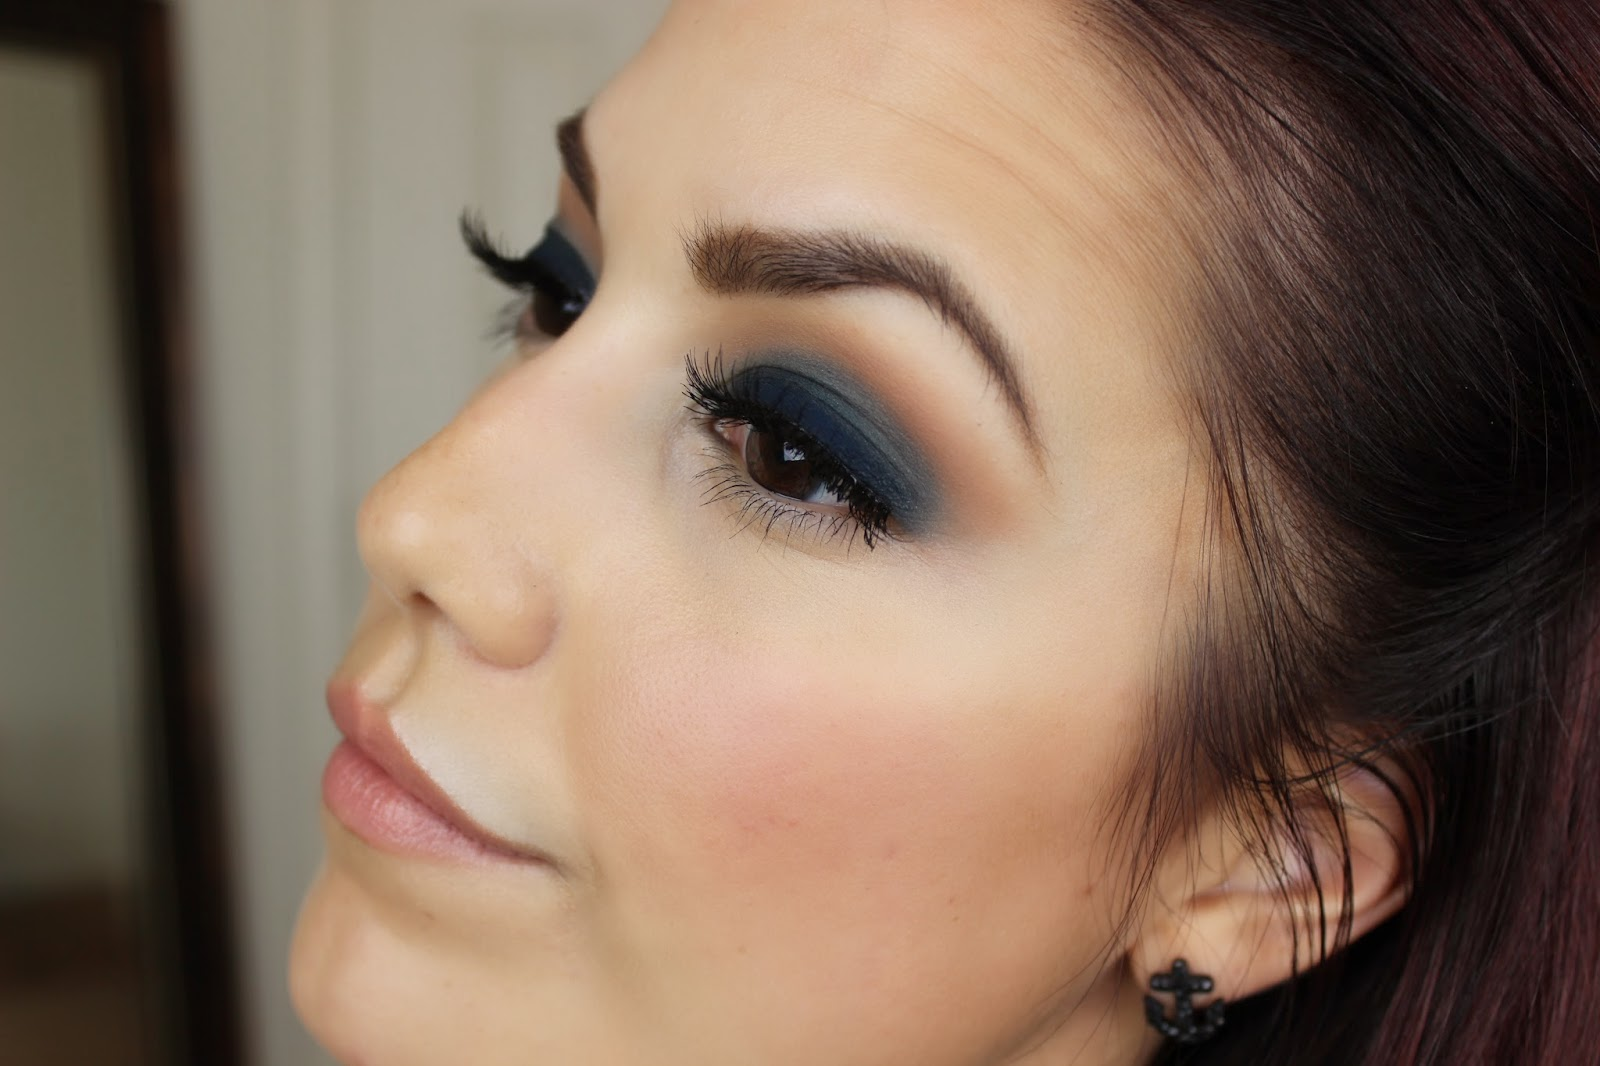 Glamour by lexi r navy smokey eye with lorac pro 2 palette here are the details on how to recreate this look baditri Gallery